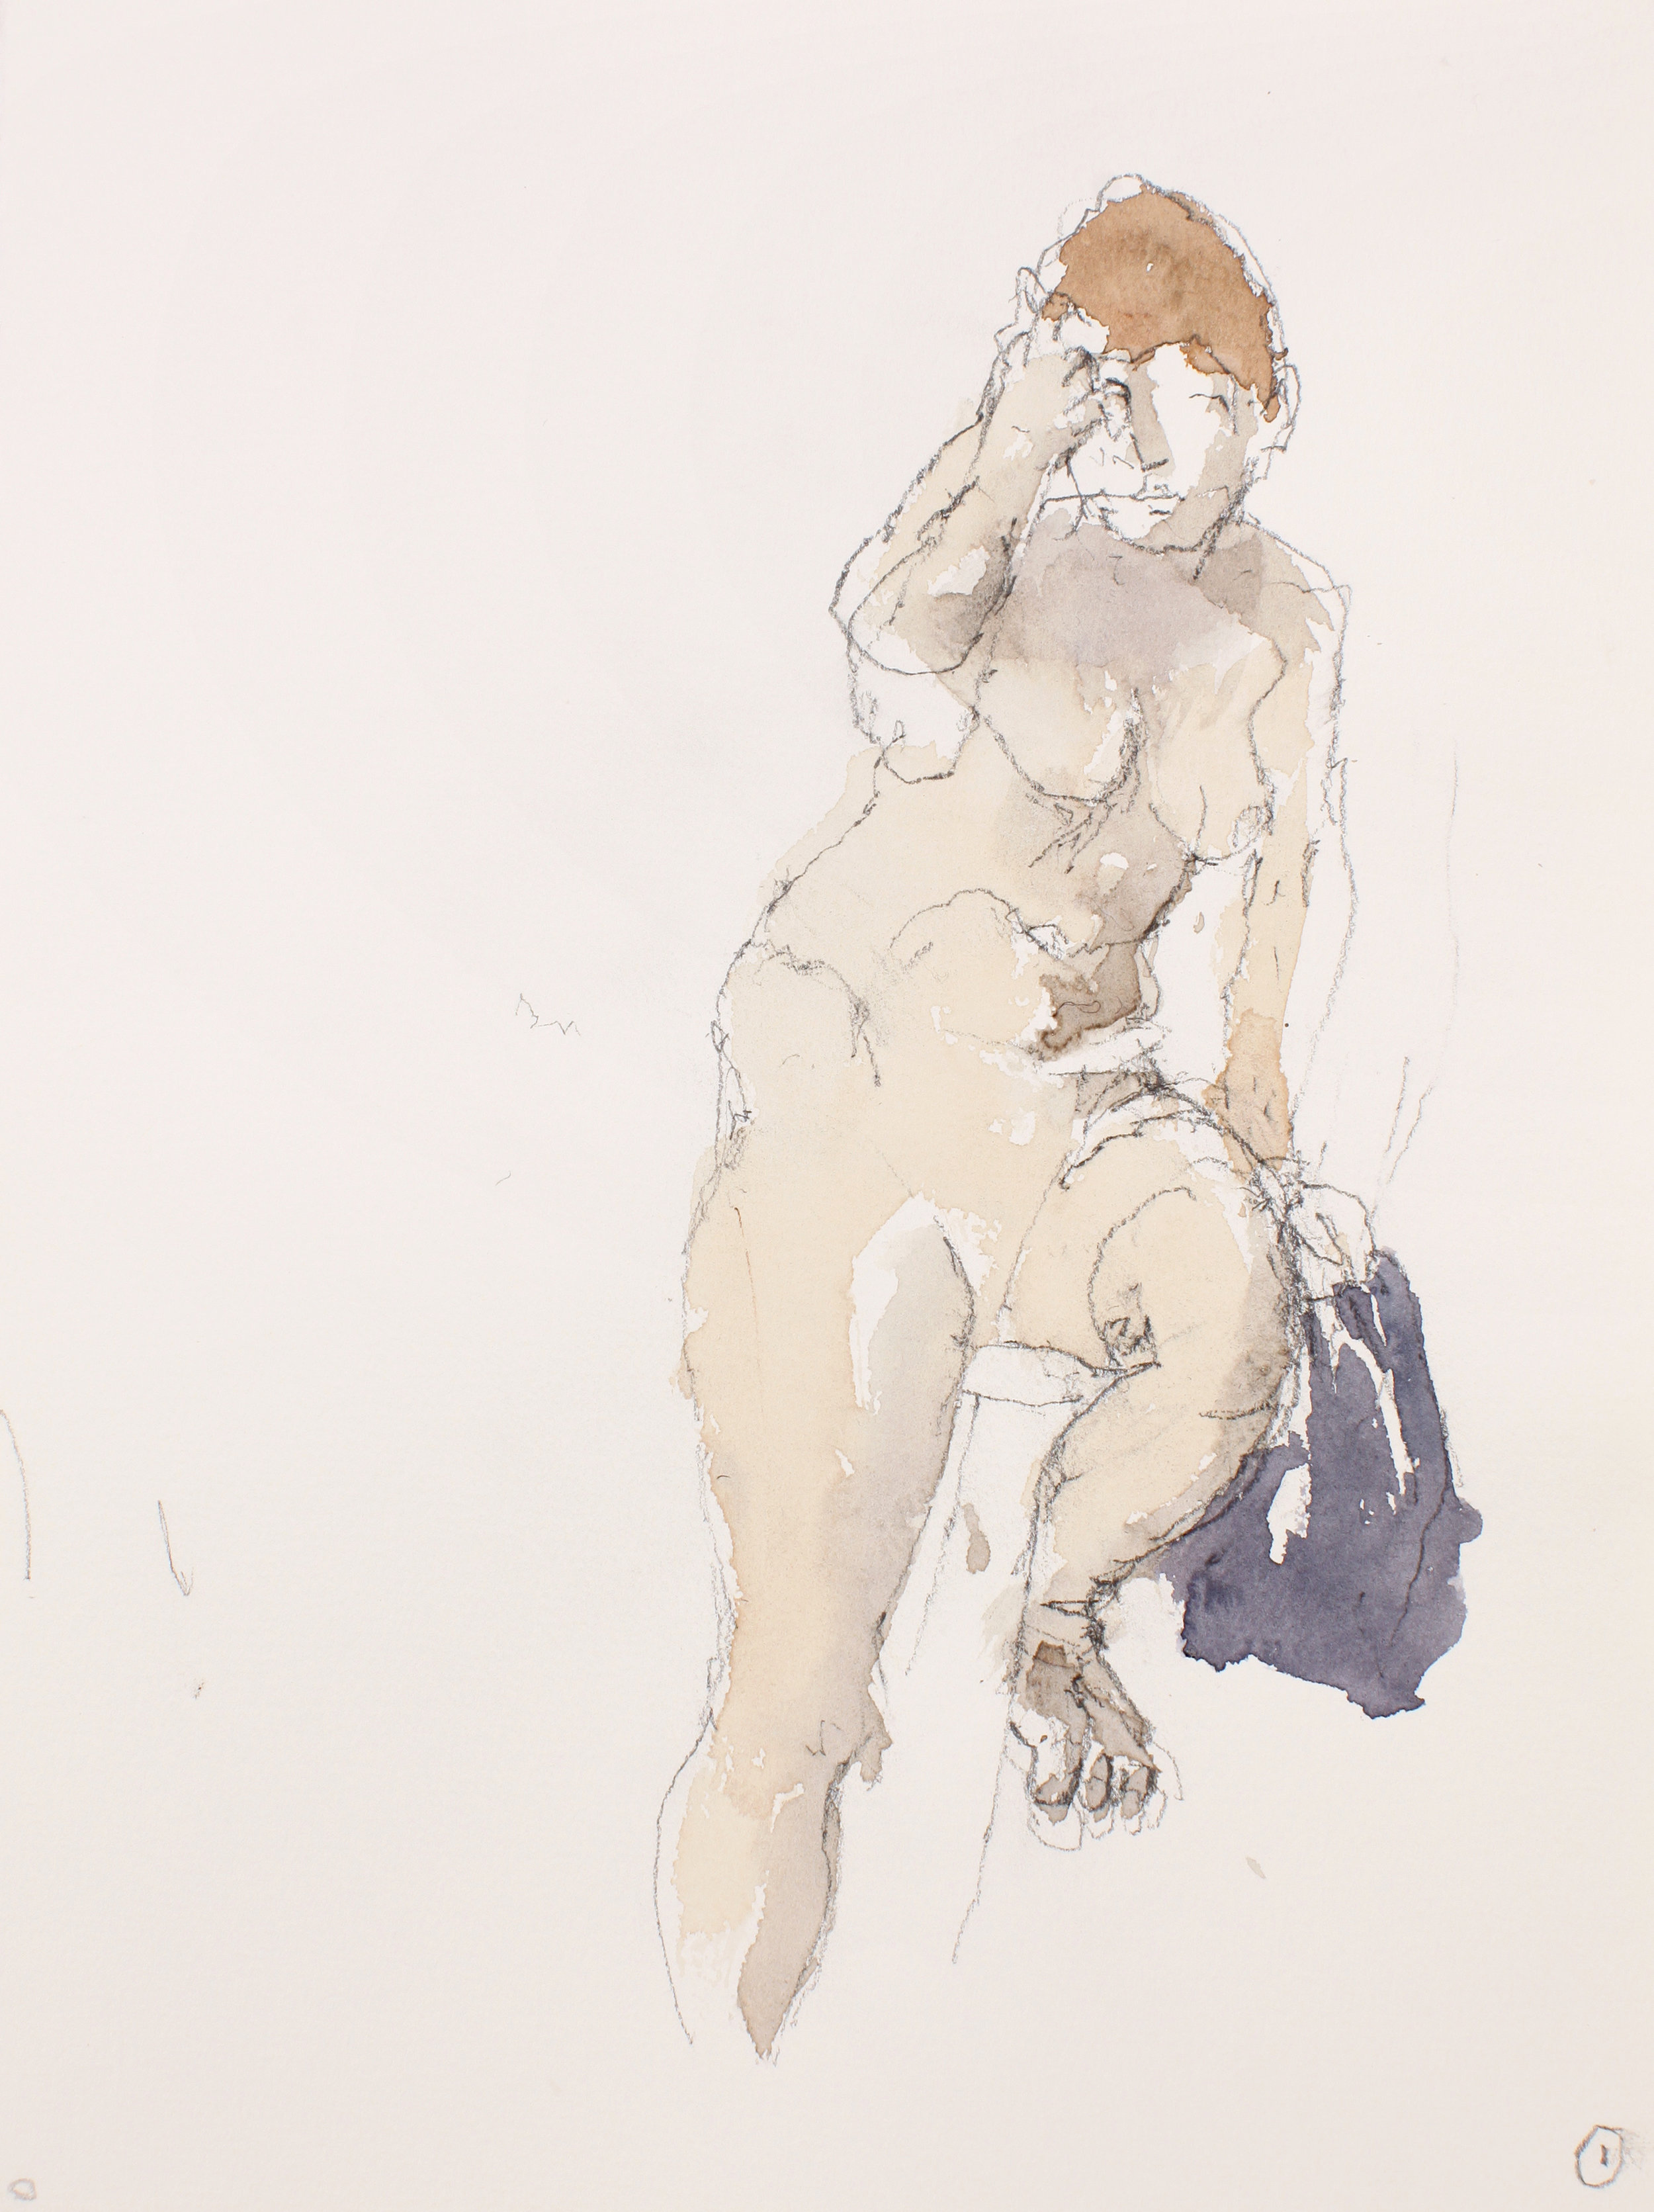 2008_Nude_on_Chair_with_Extended_Leg_in_Semi_Profilewatercolour_and_pencil_on_paper_15x11in_WPF573.jpg